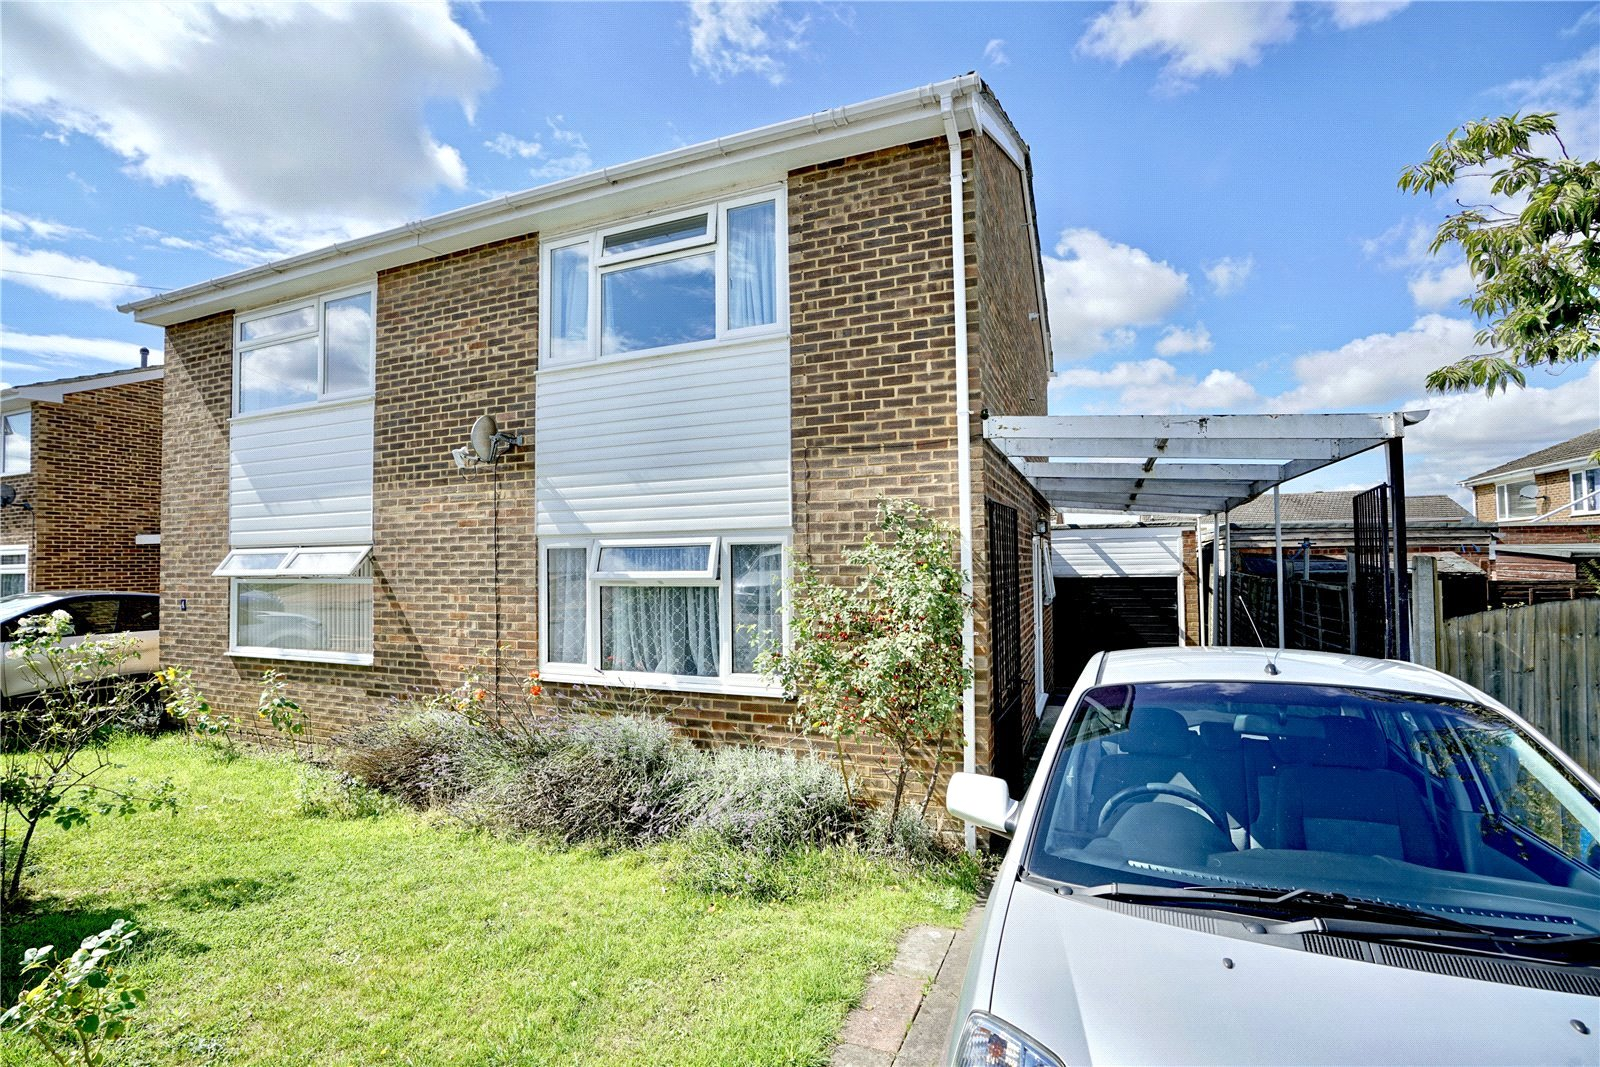 2 bed house for sale in Eynesbury, PE19 2QE, PE19